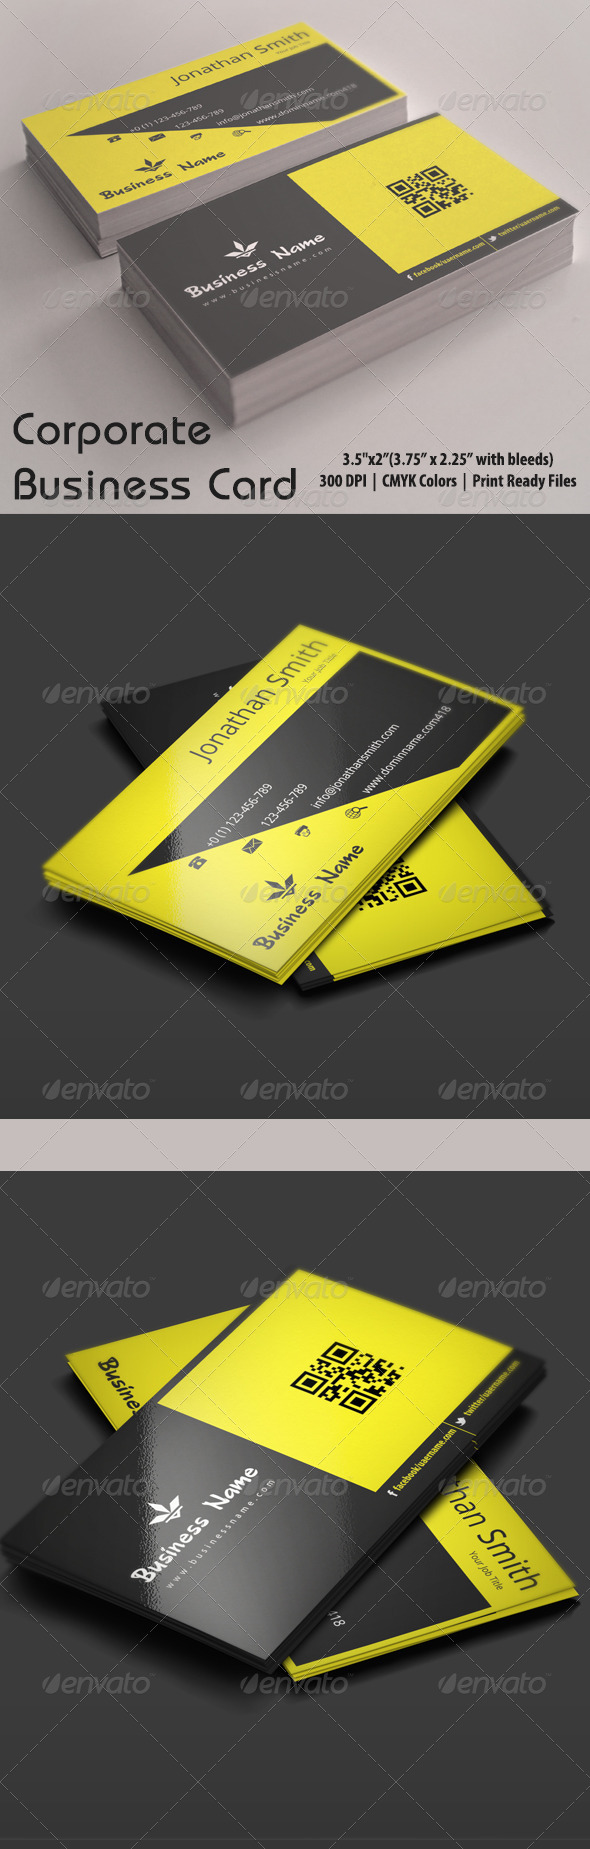 GraphicRiver Corporate Business Card 5428388